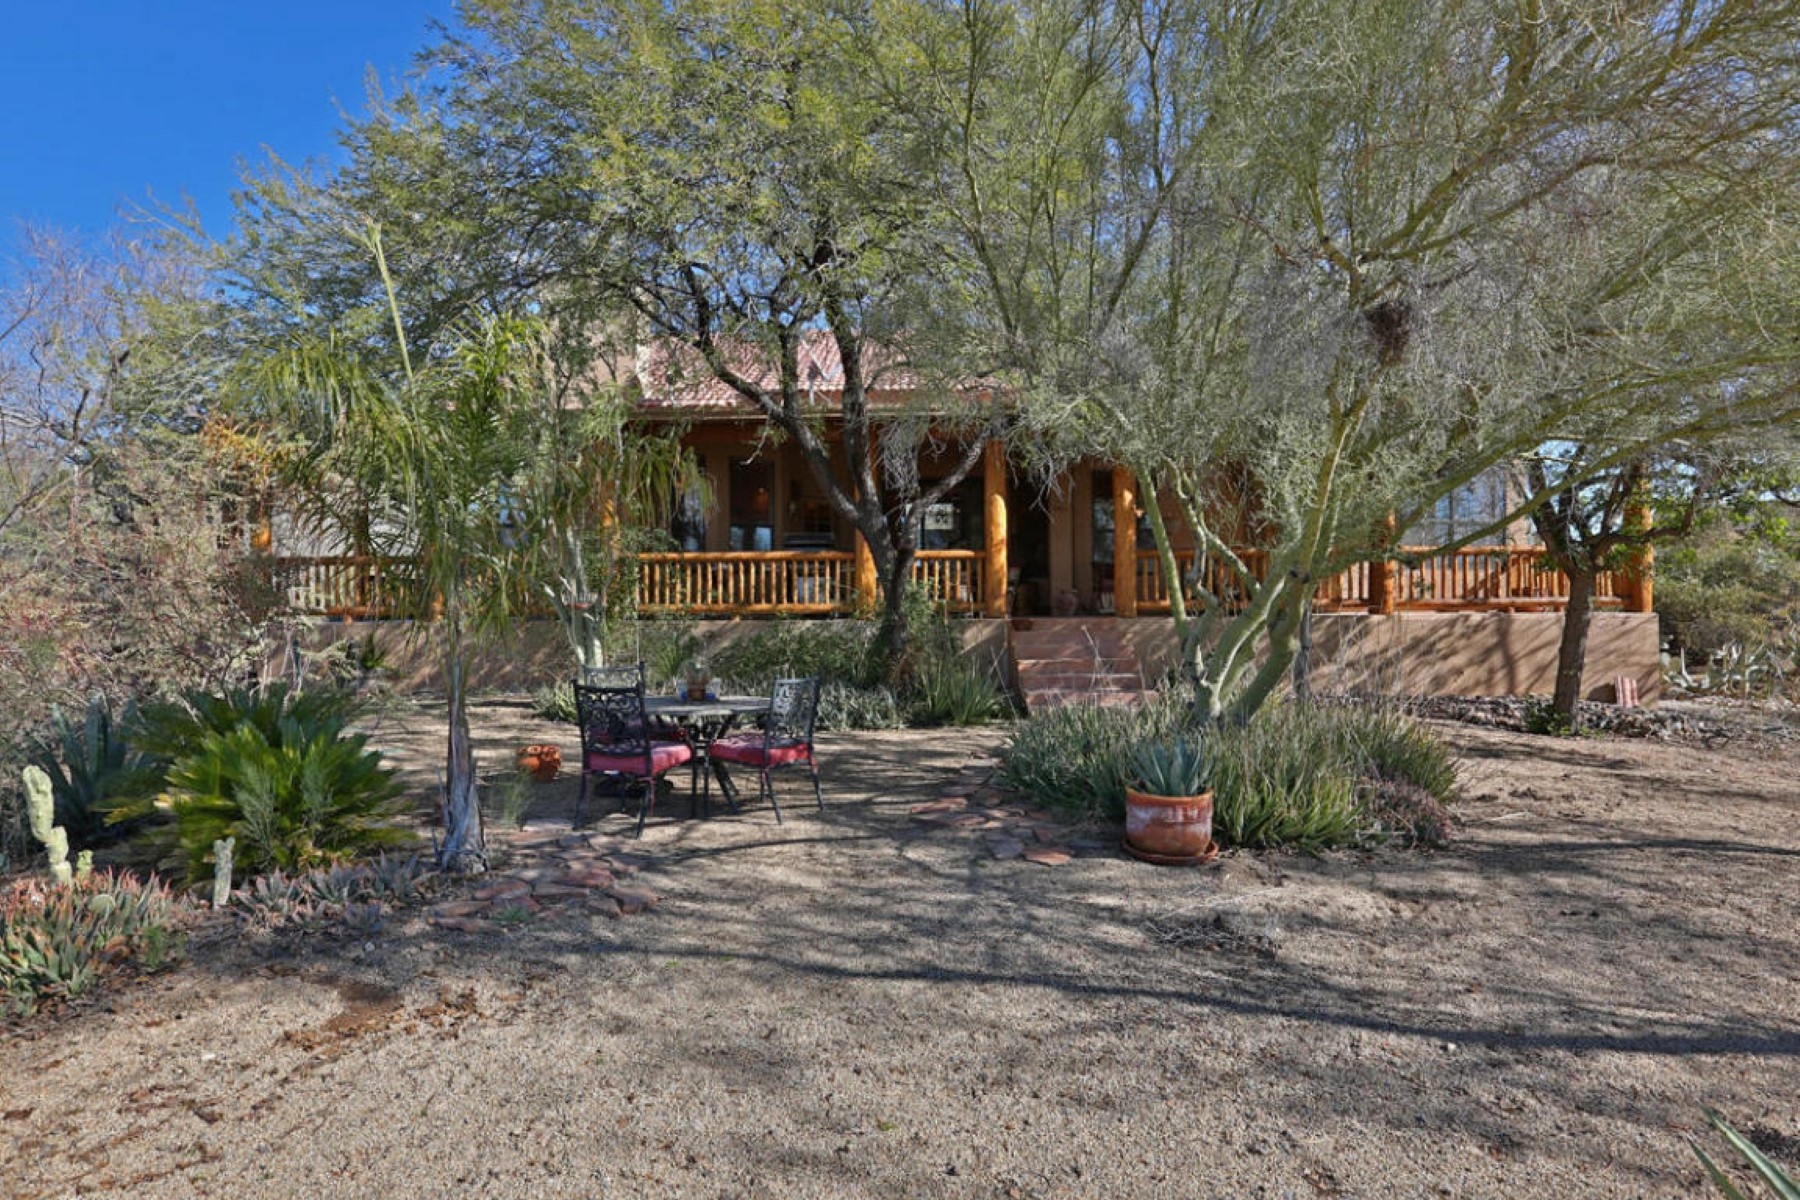 Single Family Home for Sale at Charming SW home situated on 2.34 aces 40124 N 72nd St Cave Creek, Arizona 85327 United States